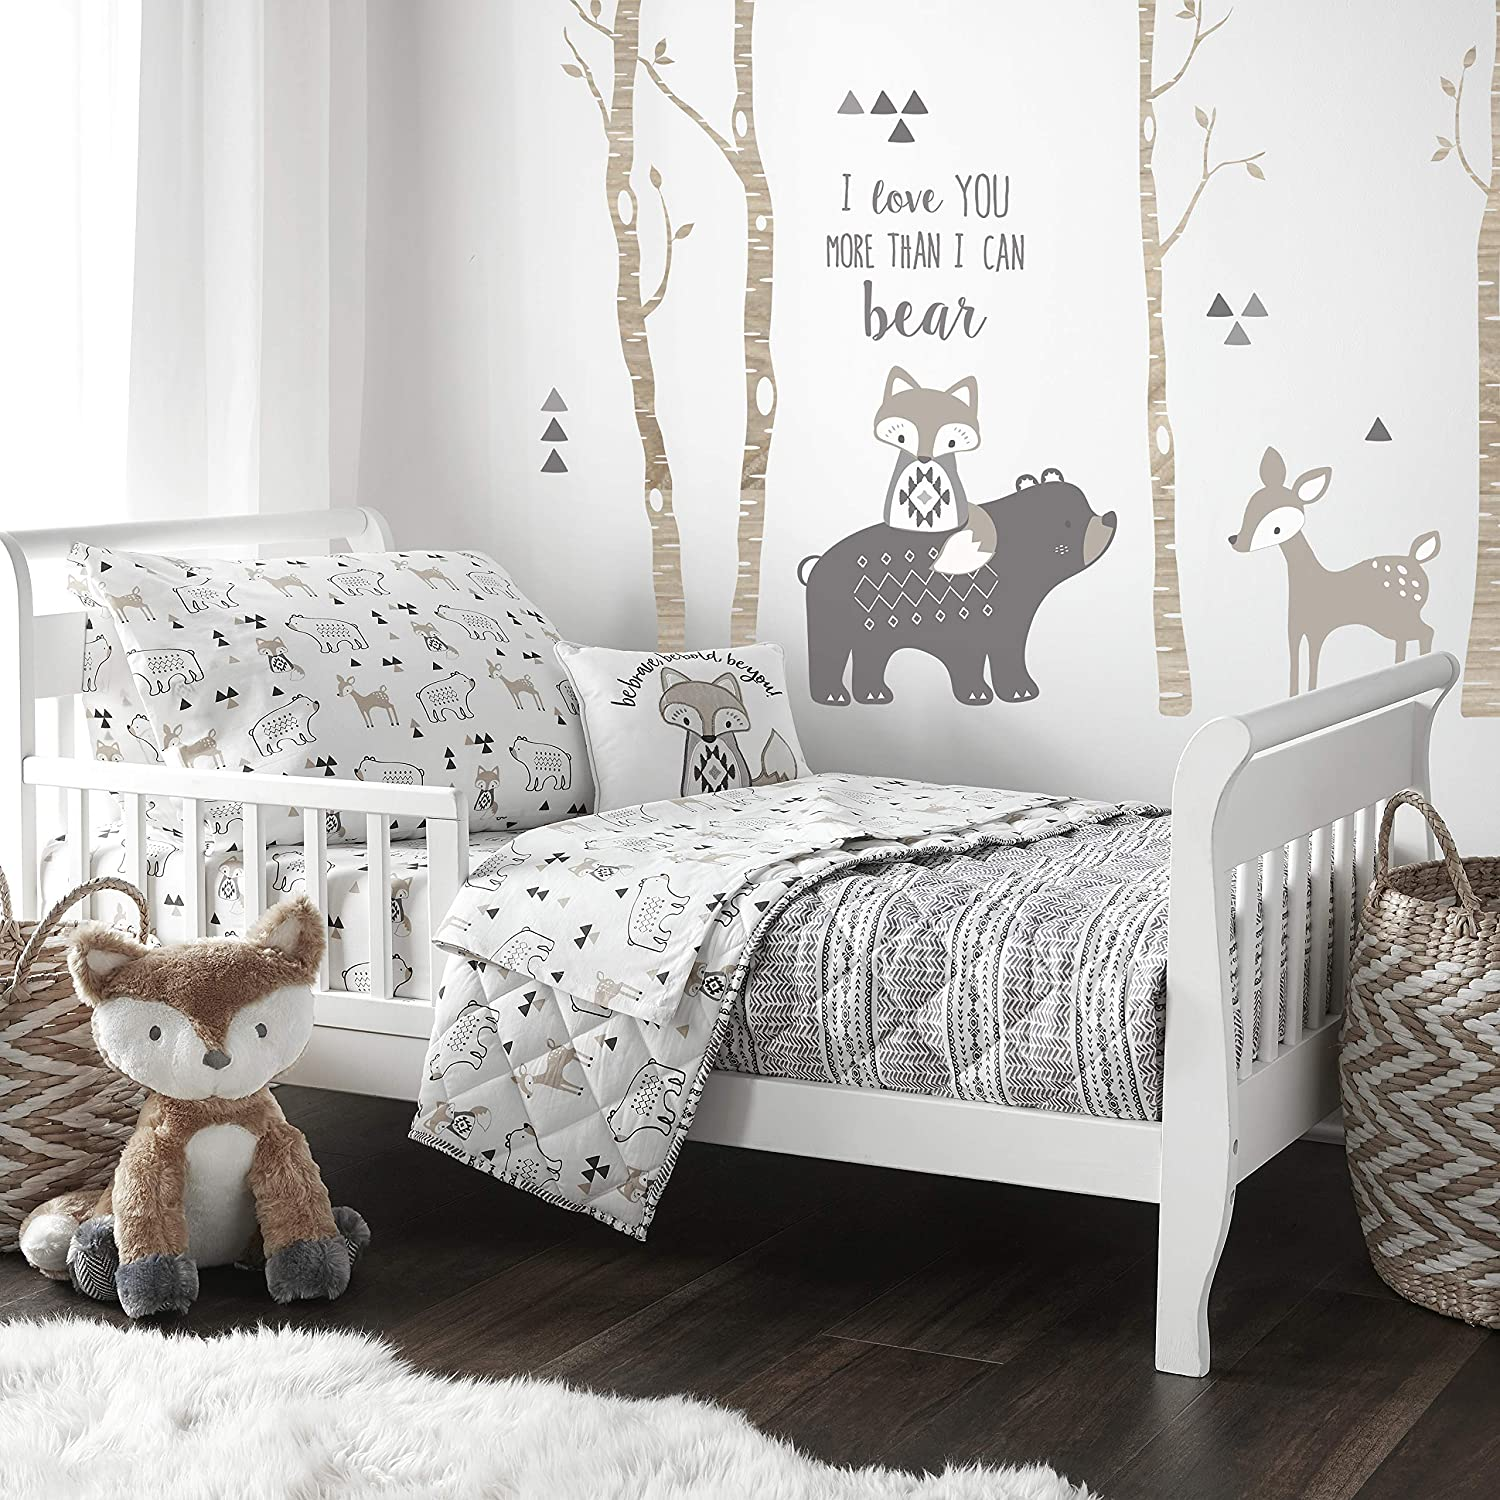 Amazon Com Levtex Baby Bailey Toddler Bed Set Charcoal Grey White Taupe Woodland 5 Piece Set Includes Reversible Quilt Fitted Sheet Flat Sheet Pillow Case Decorative Pilow Baby